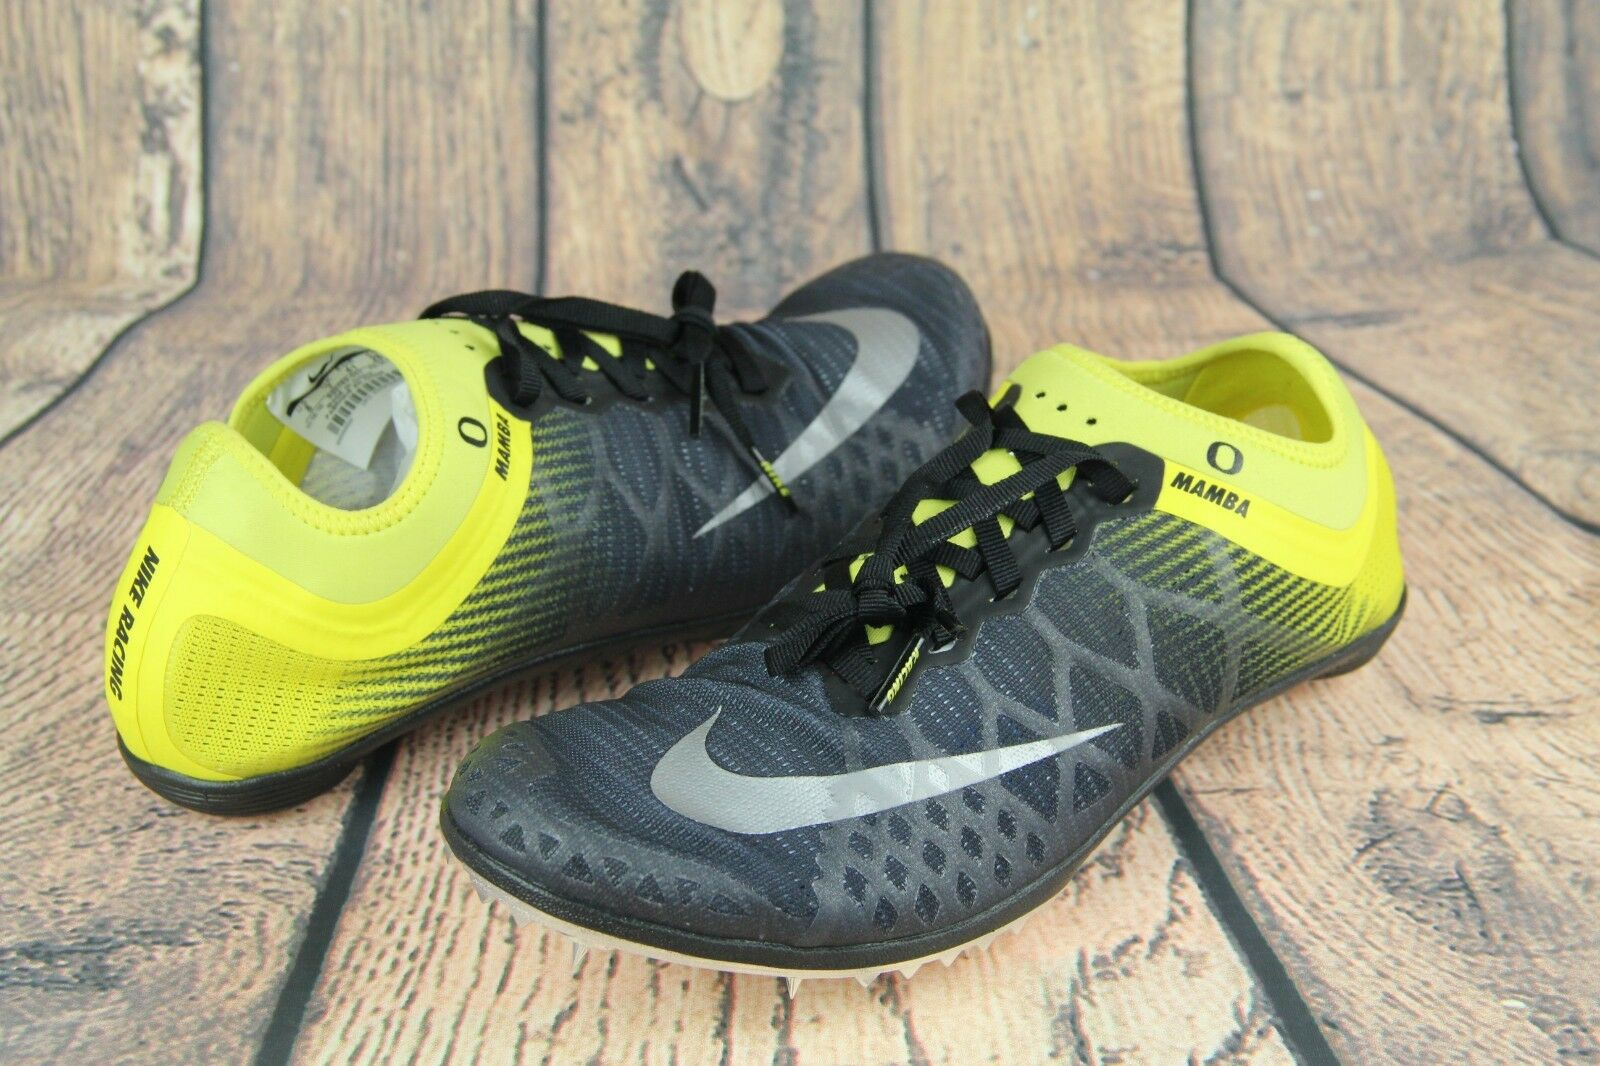 Nike Zoom Mamba 3 Oregon Ducks Track Spike Black Yellow 920762-007 Mens Size 8